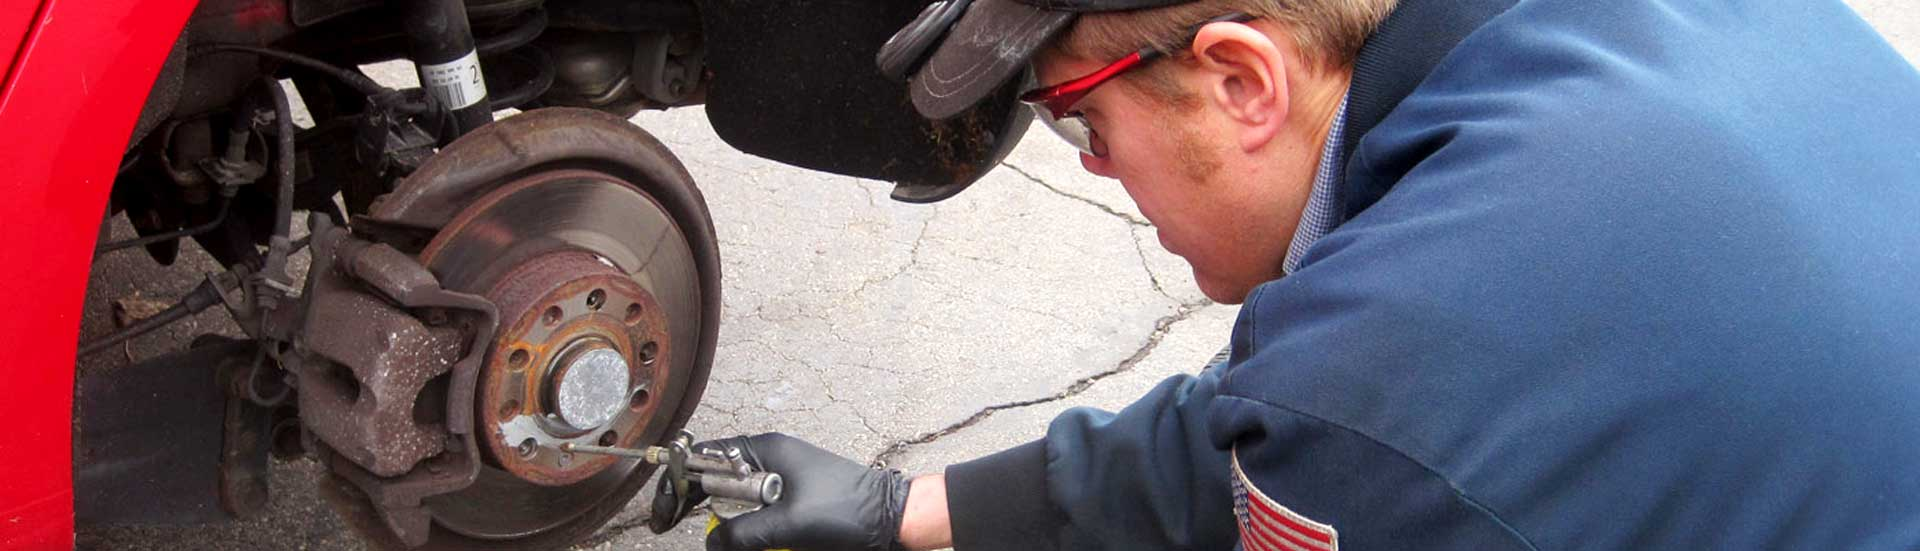 Auto Repair Shop In Milwaukee Wi Ase Certified Mechanic